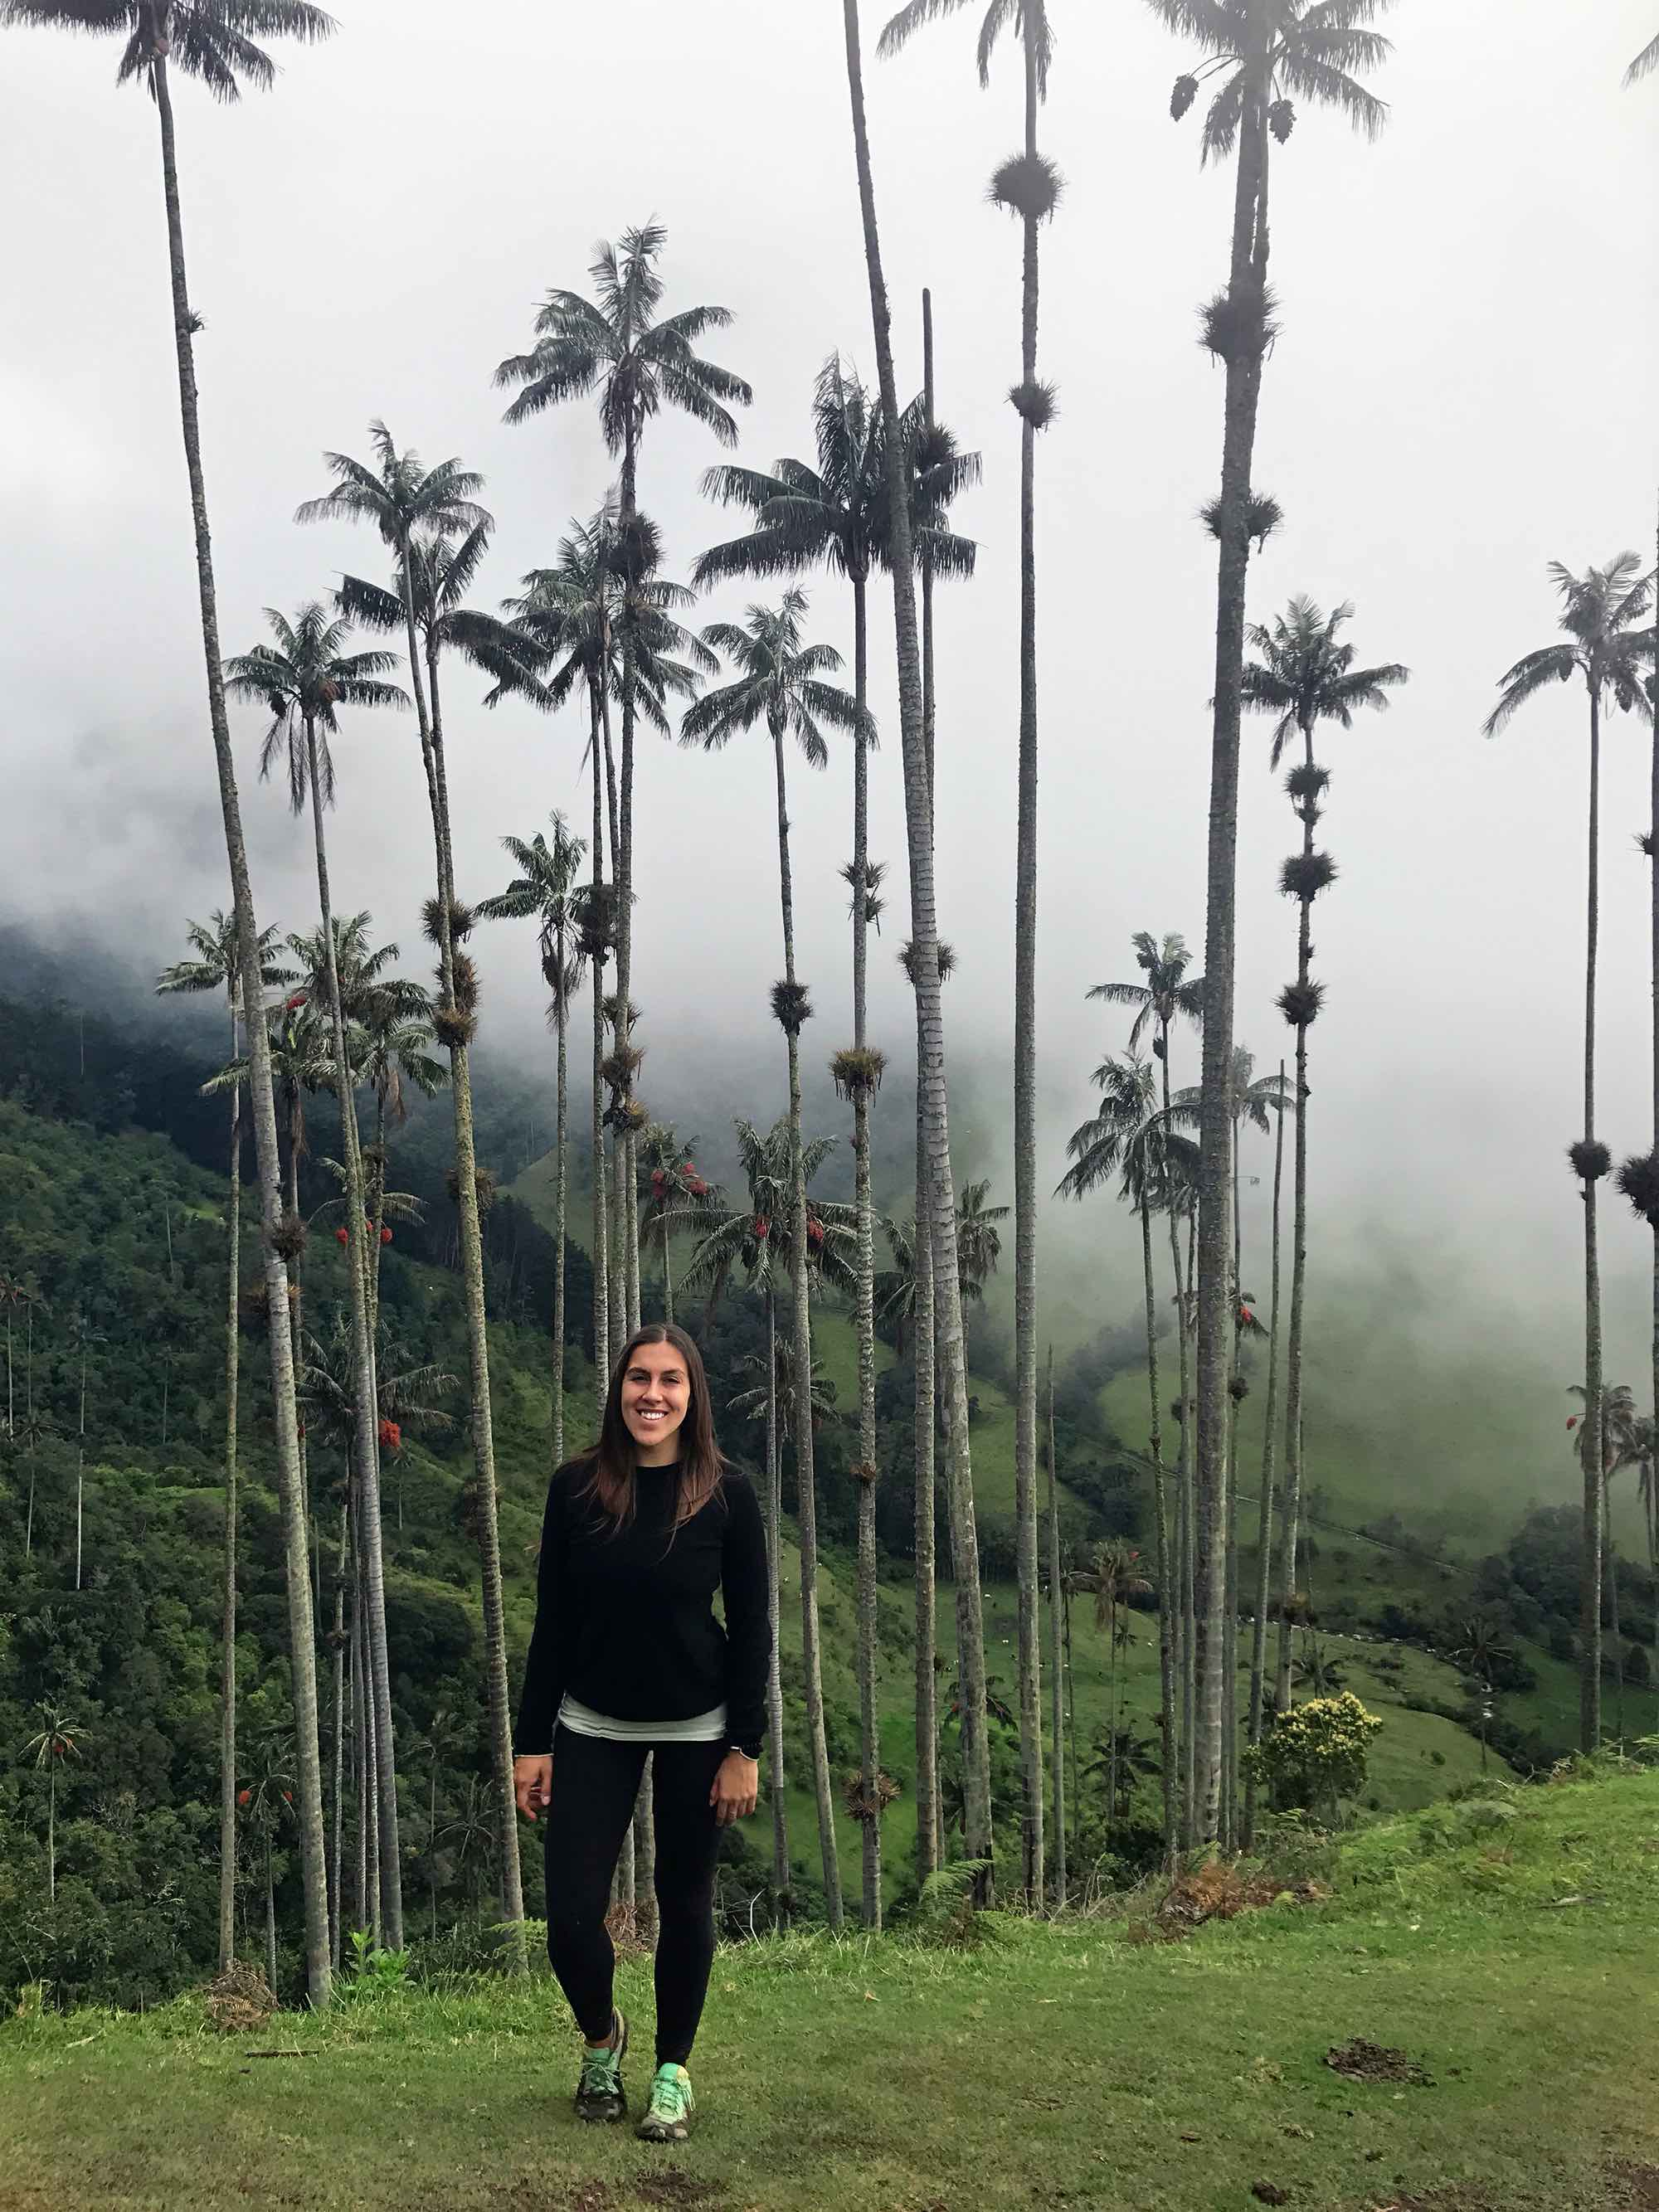 Wax Palm Trees | Cocora Valley, Colombia